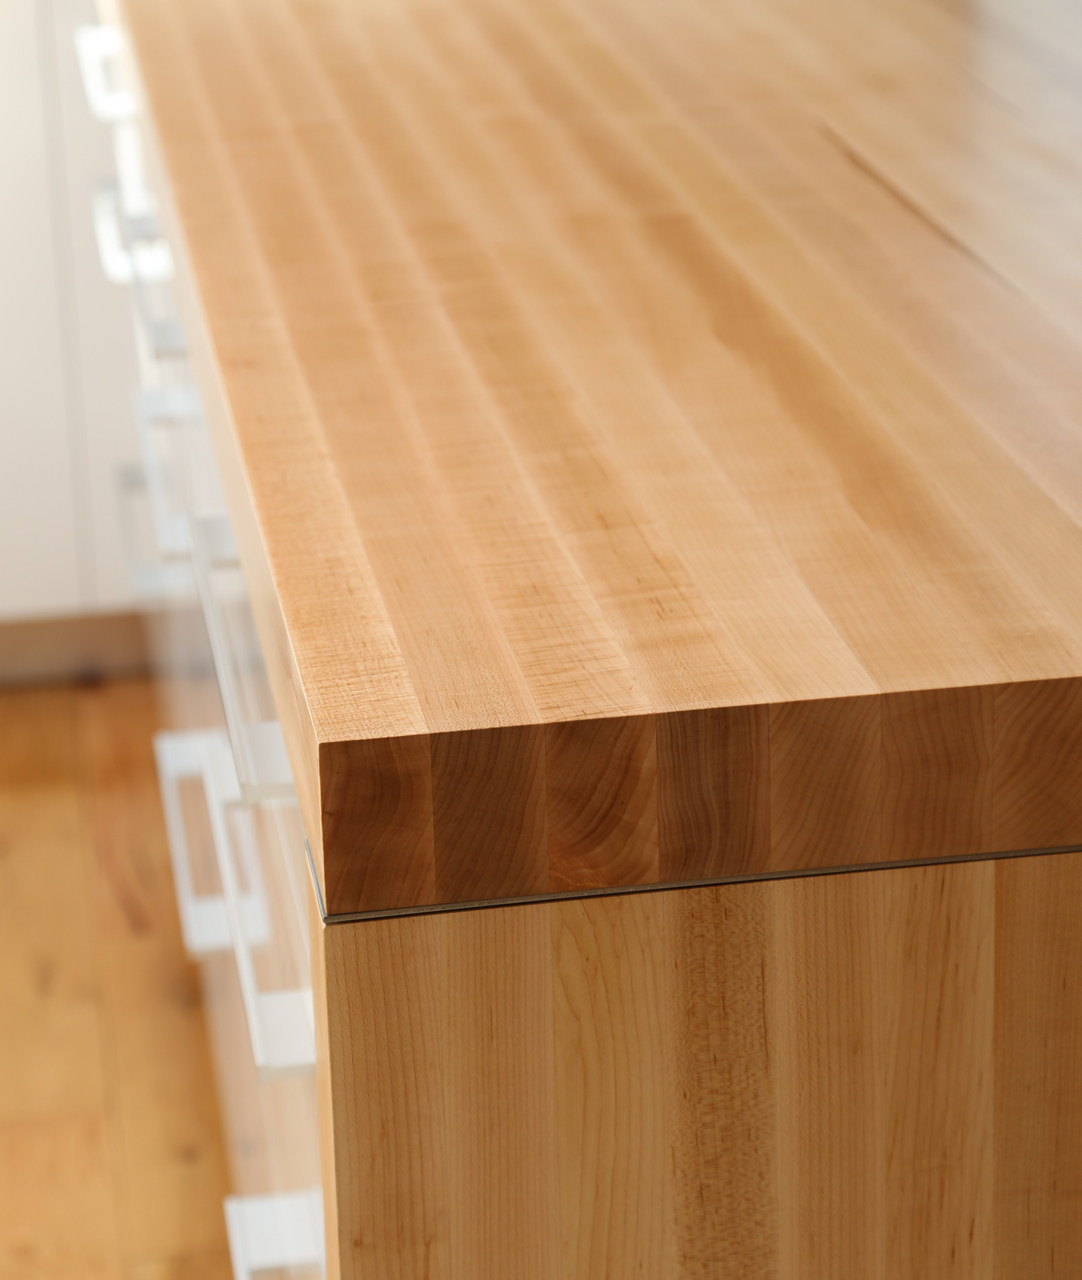 Hard Sugar Maple Countertop